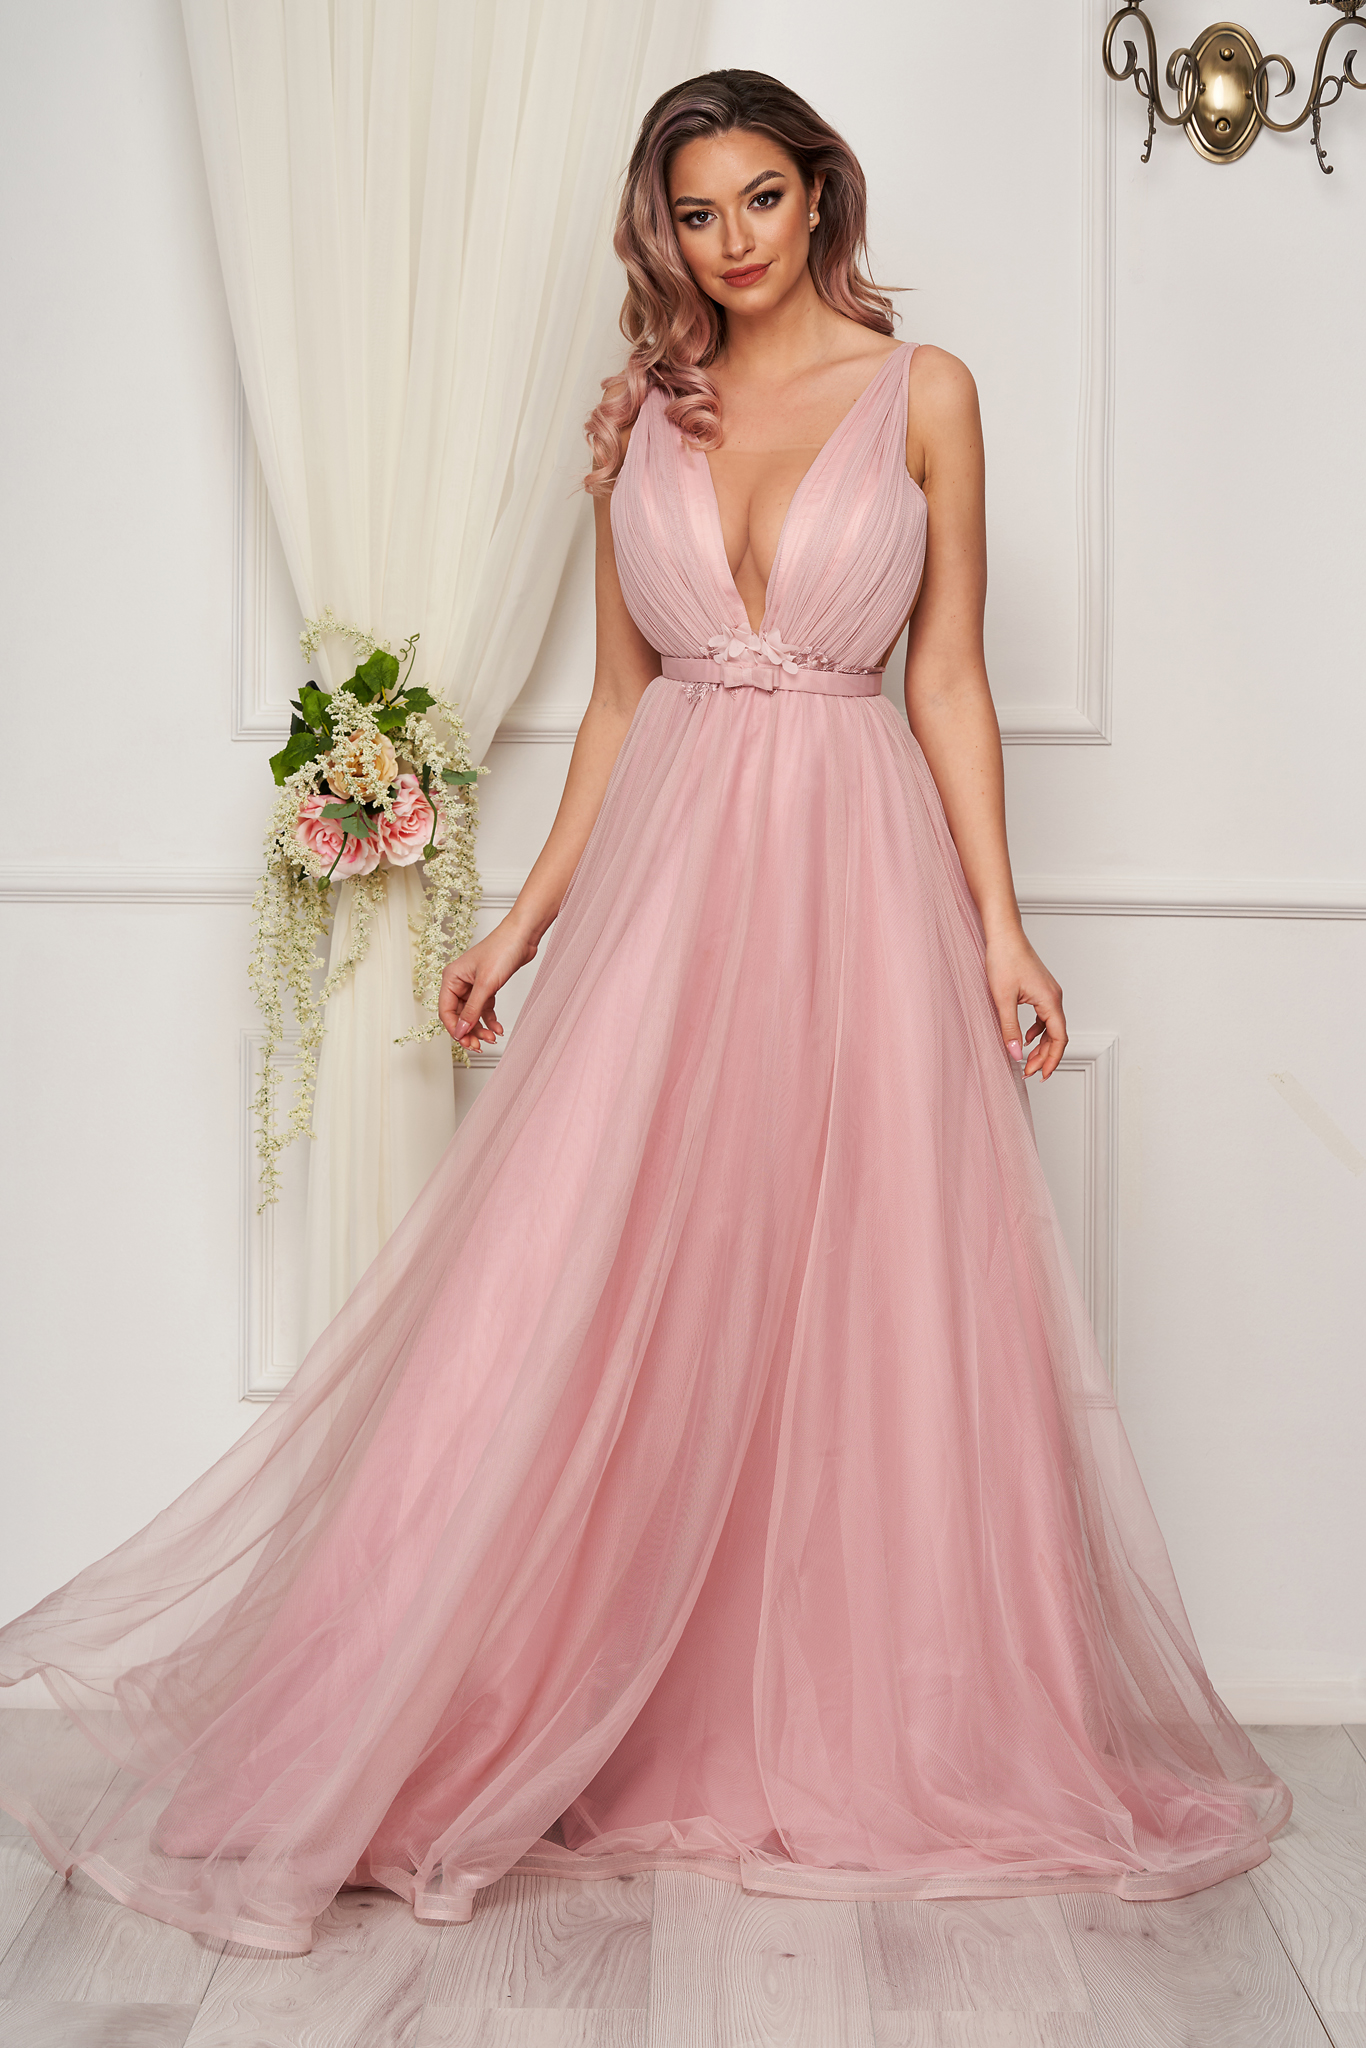 Lightpink dress from tulle cloche corset tipe fastening